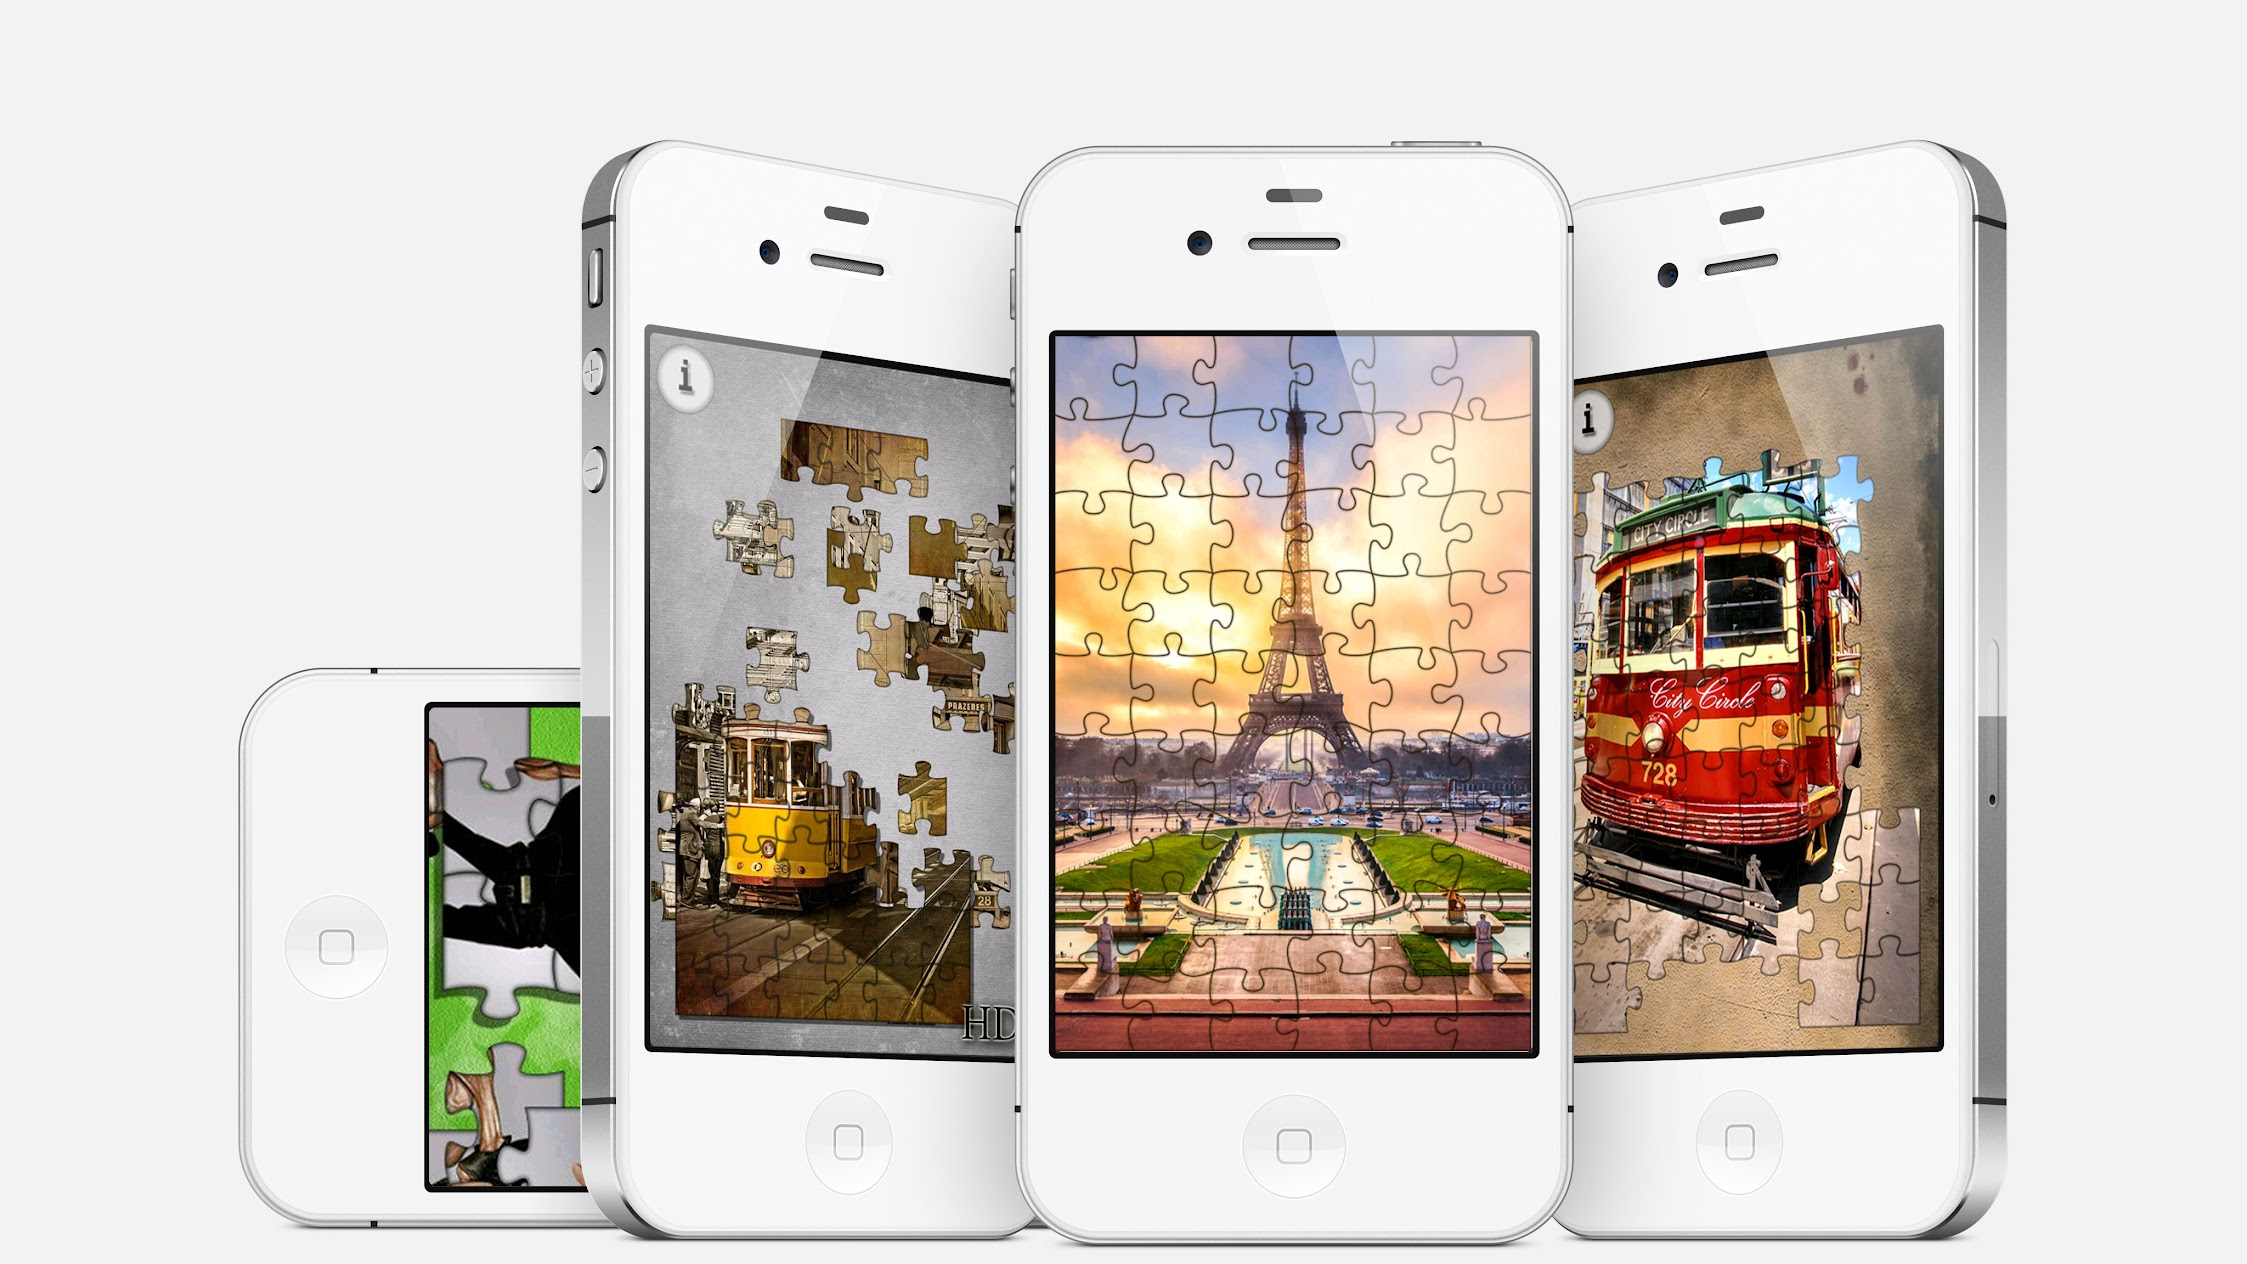 Ran Games - best jigsaw puzzles for mobile devices